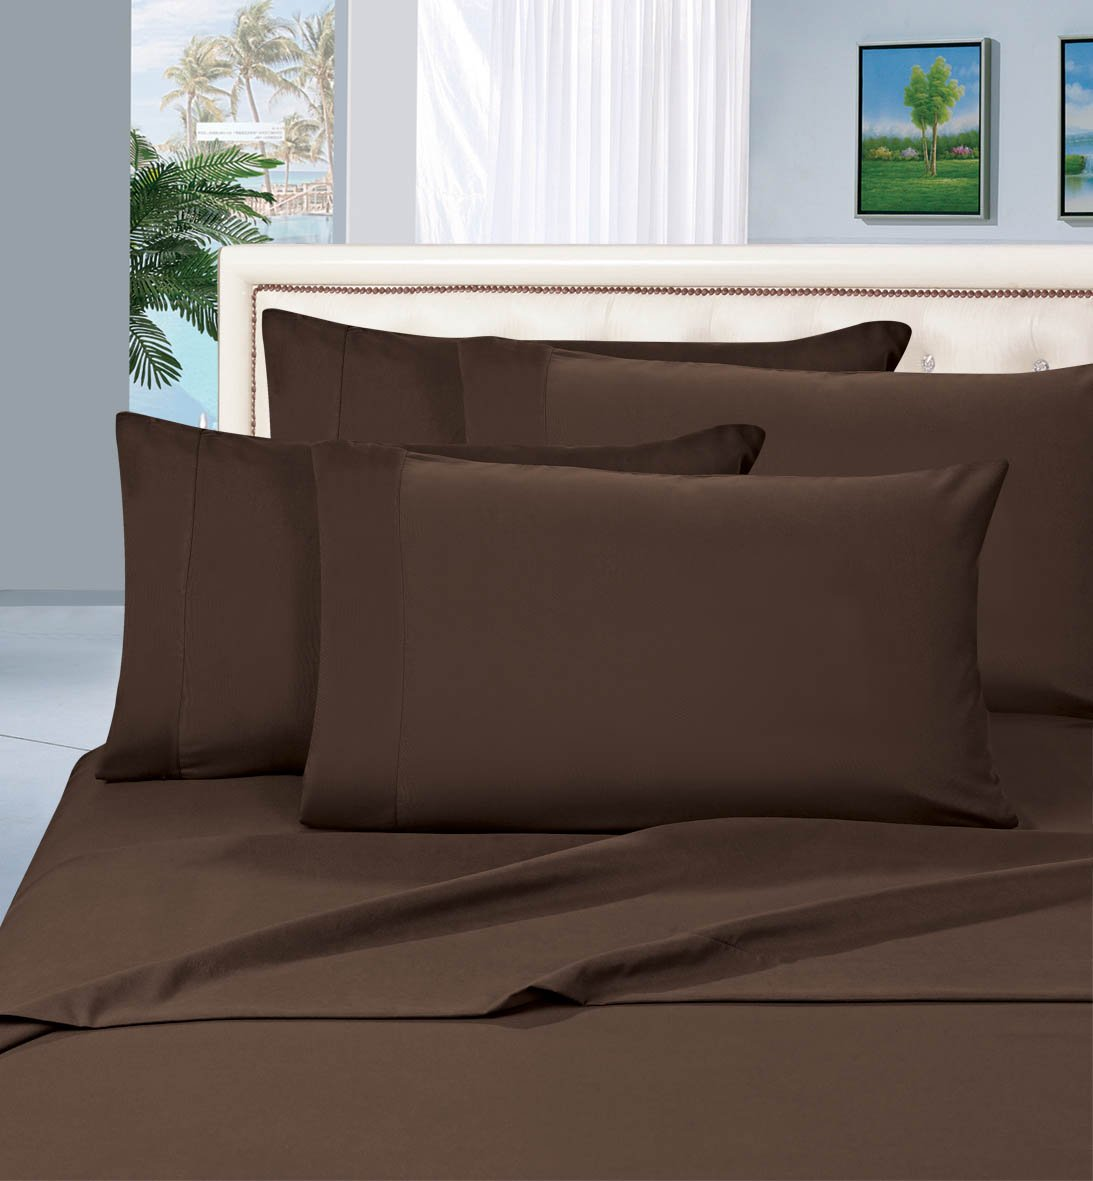 Elegant Comfort 2 Piece Luxurious Silky-Soft Pillowcases, Standard, Brown 110RW-PCASE-Q Brown